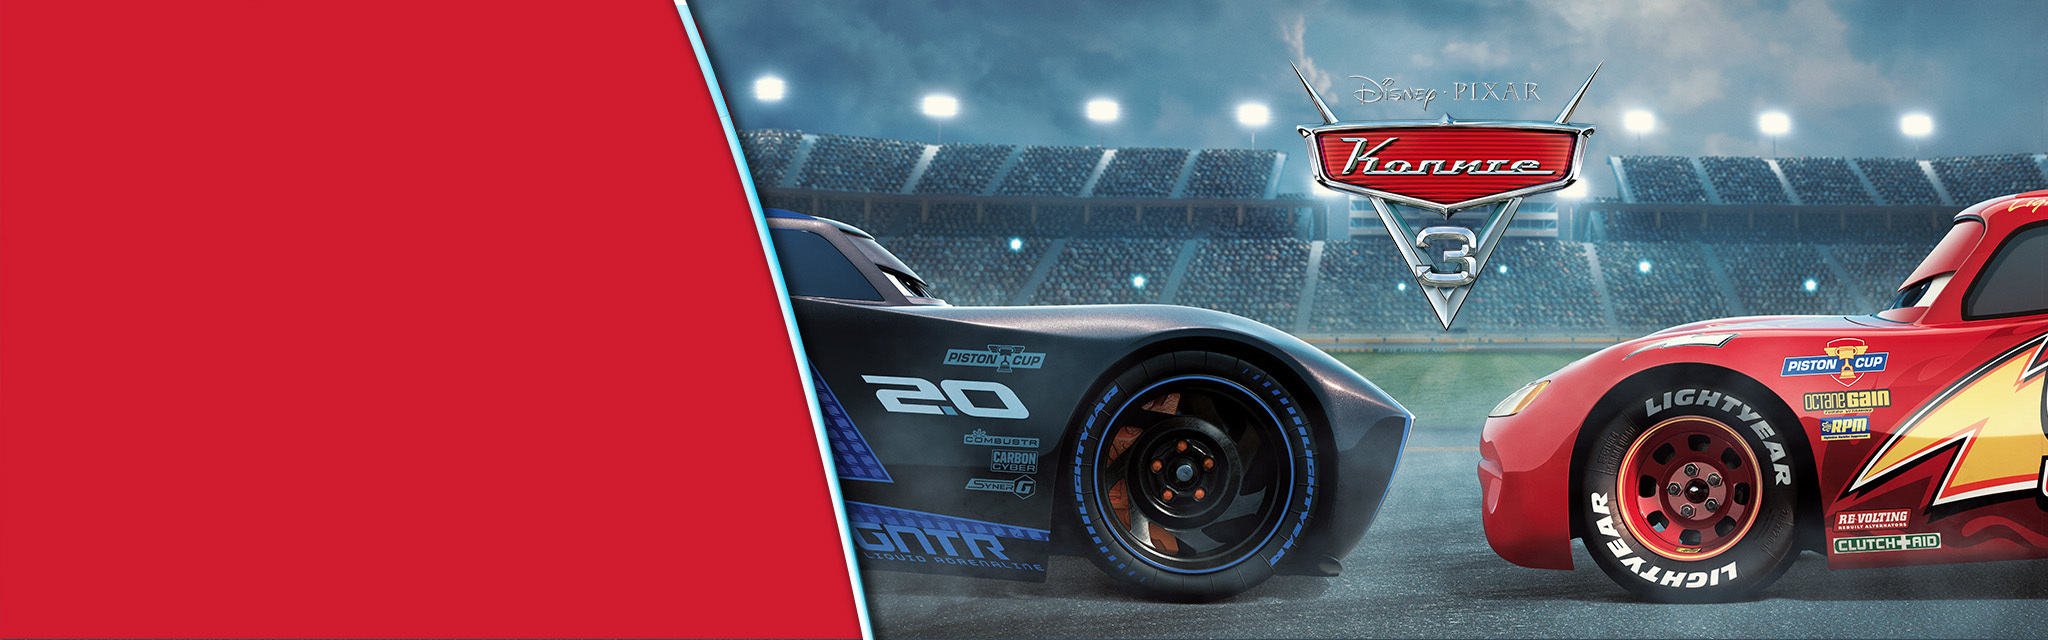 FW Hero - Cars 3 - In cinemas